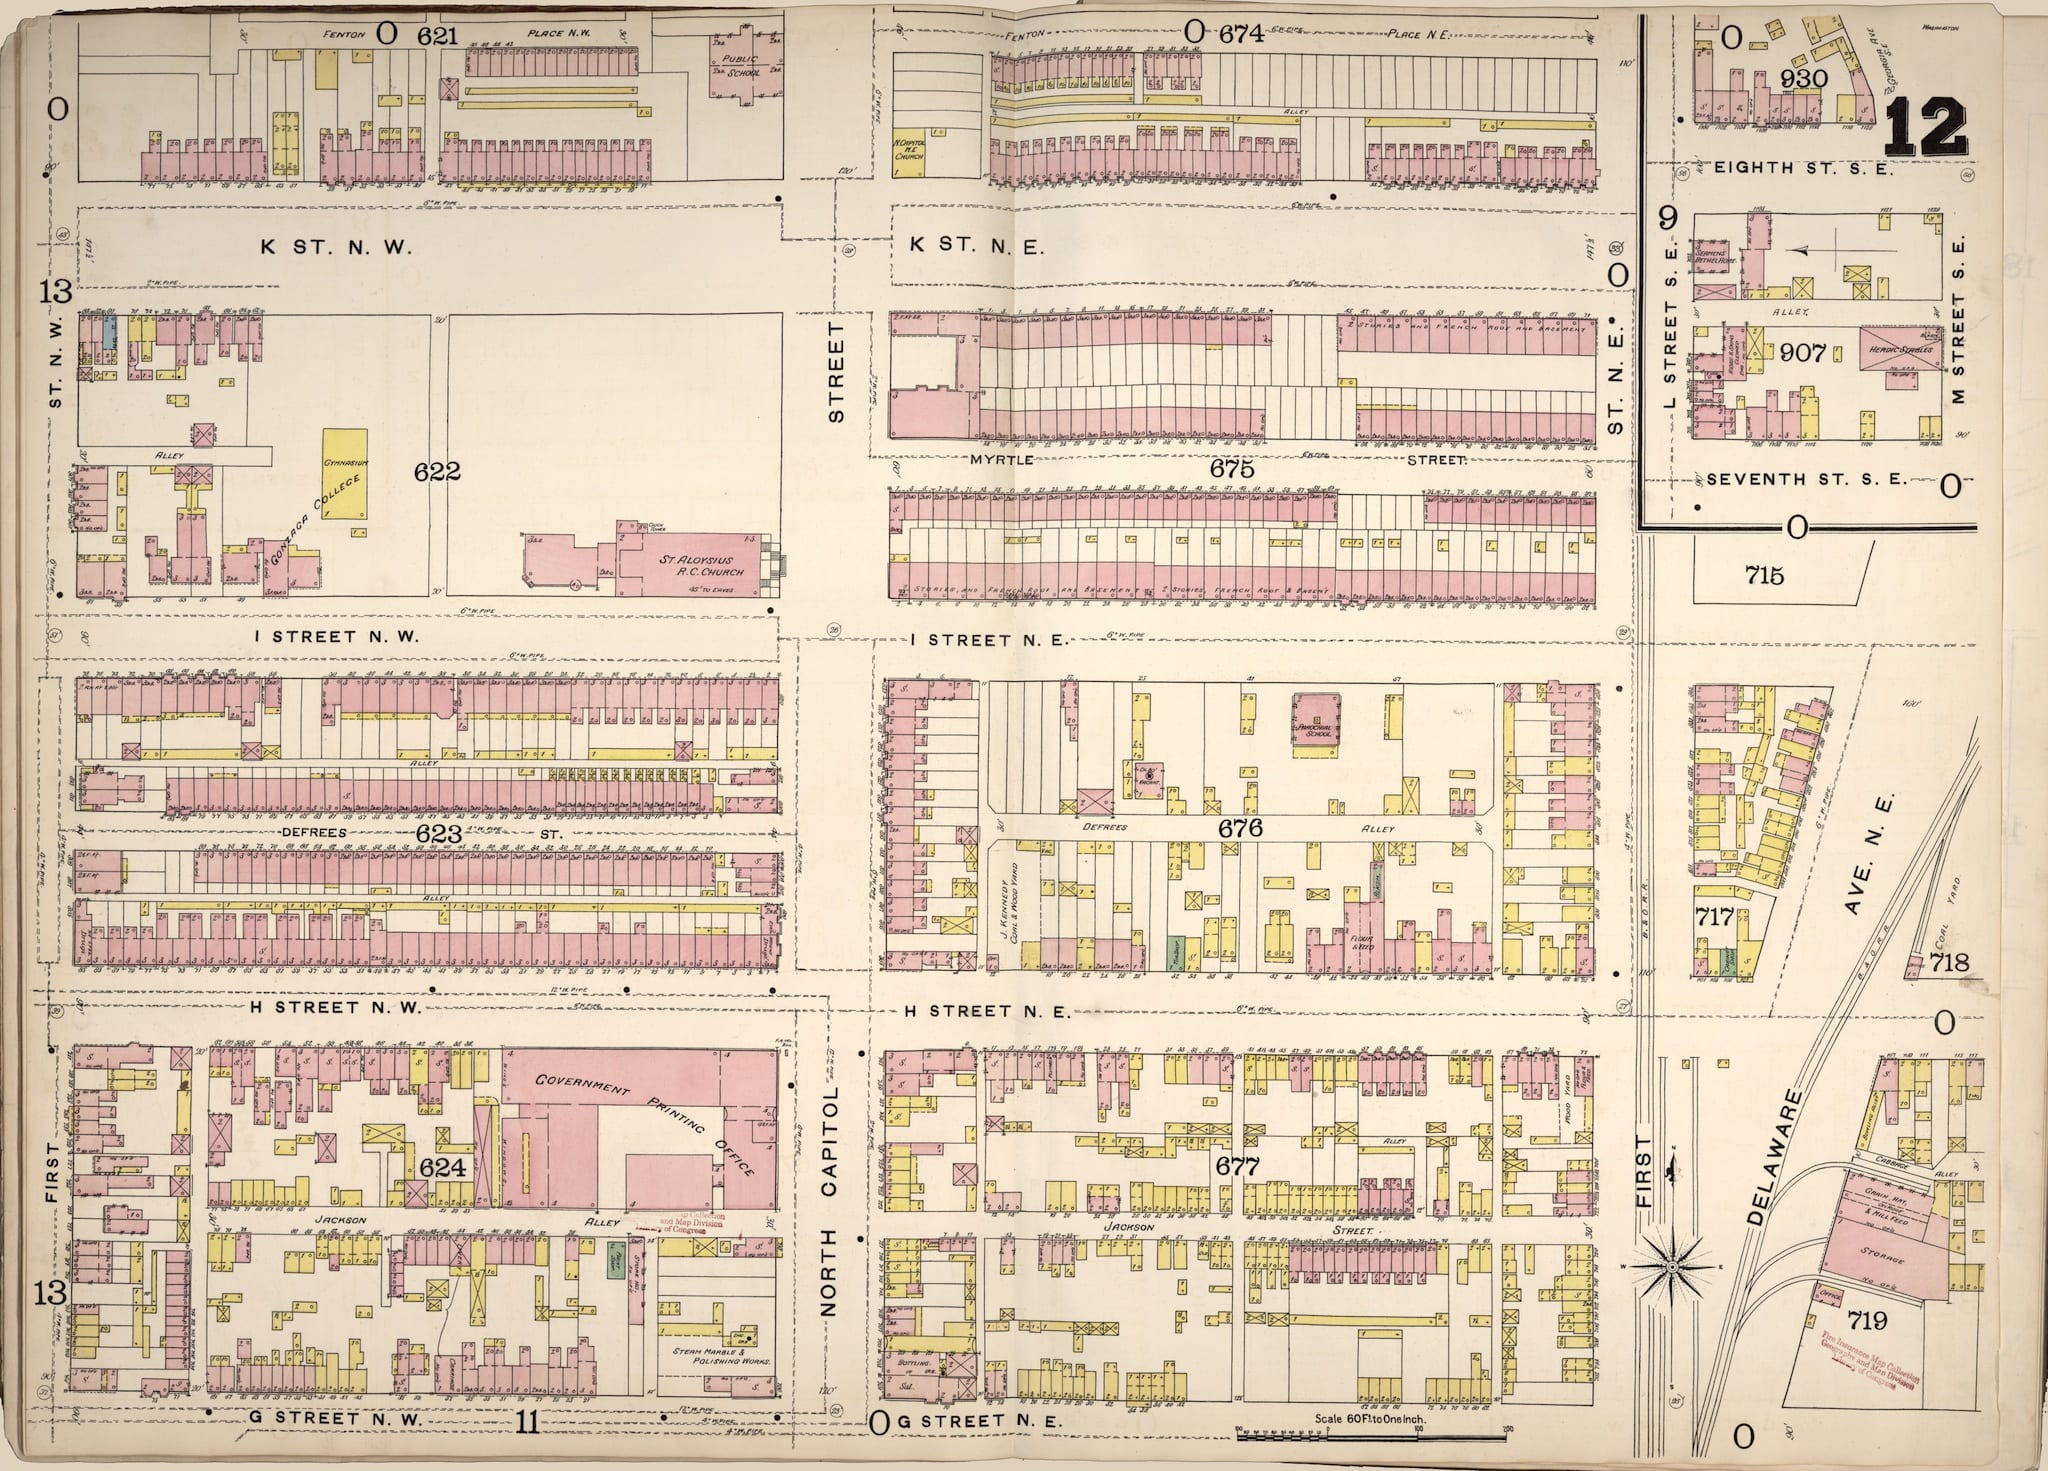 1888 Sanborn fire insurance map of Swampoodle